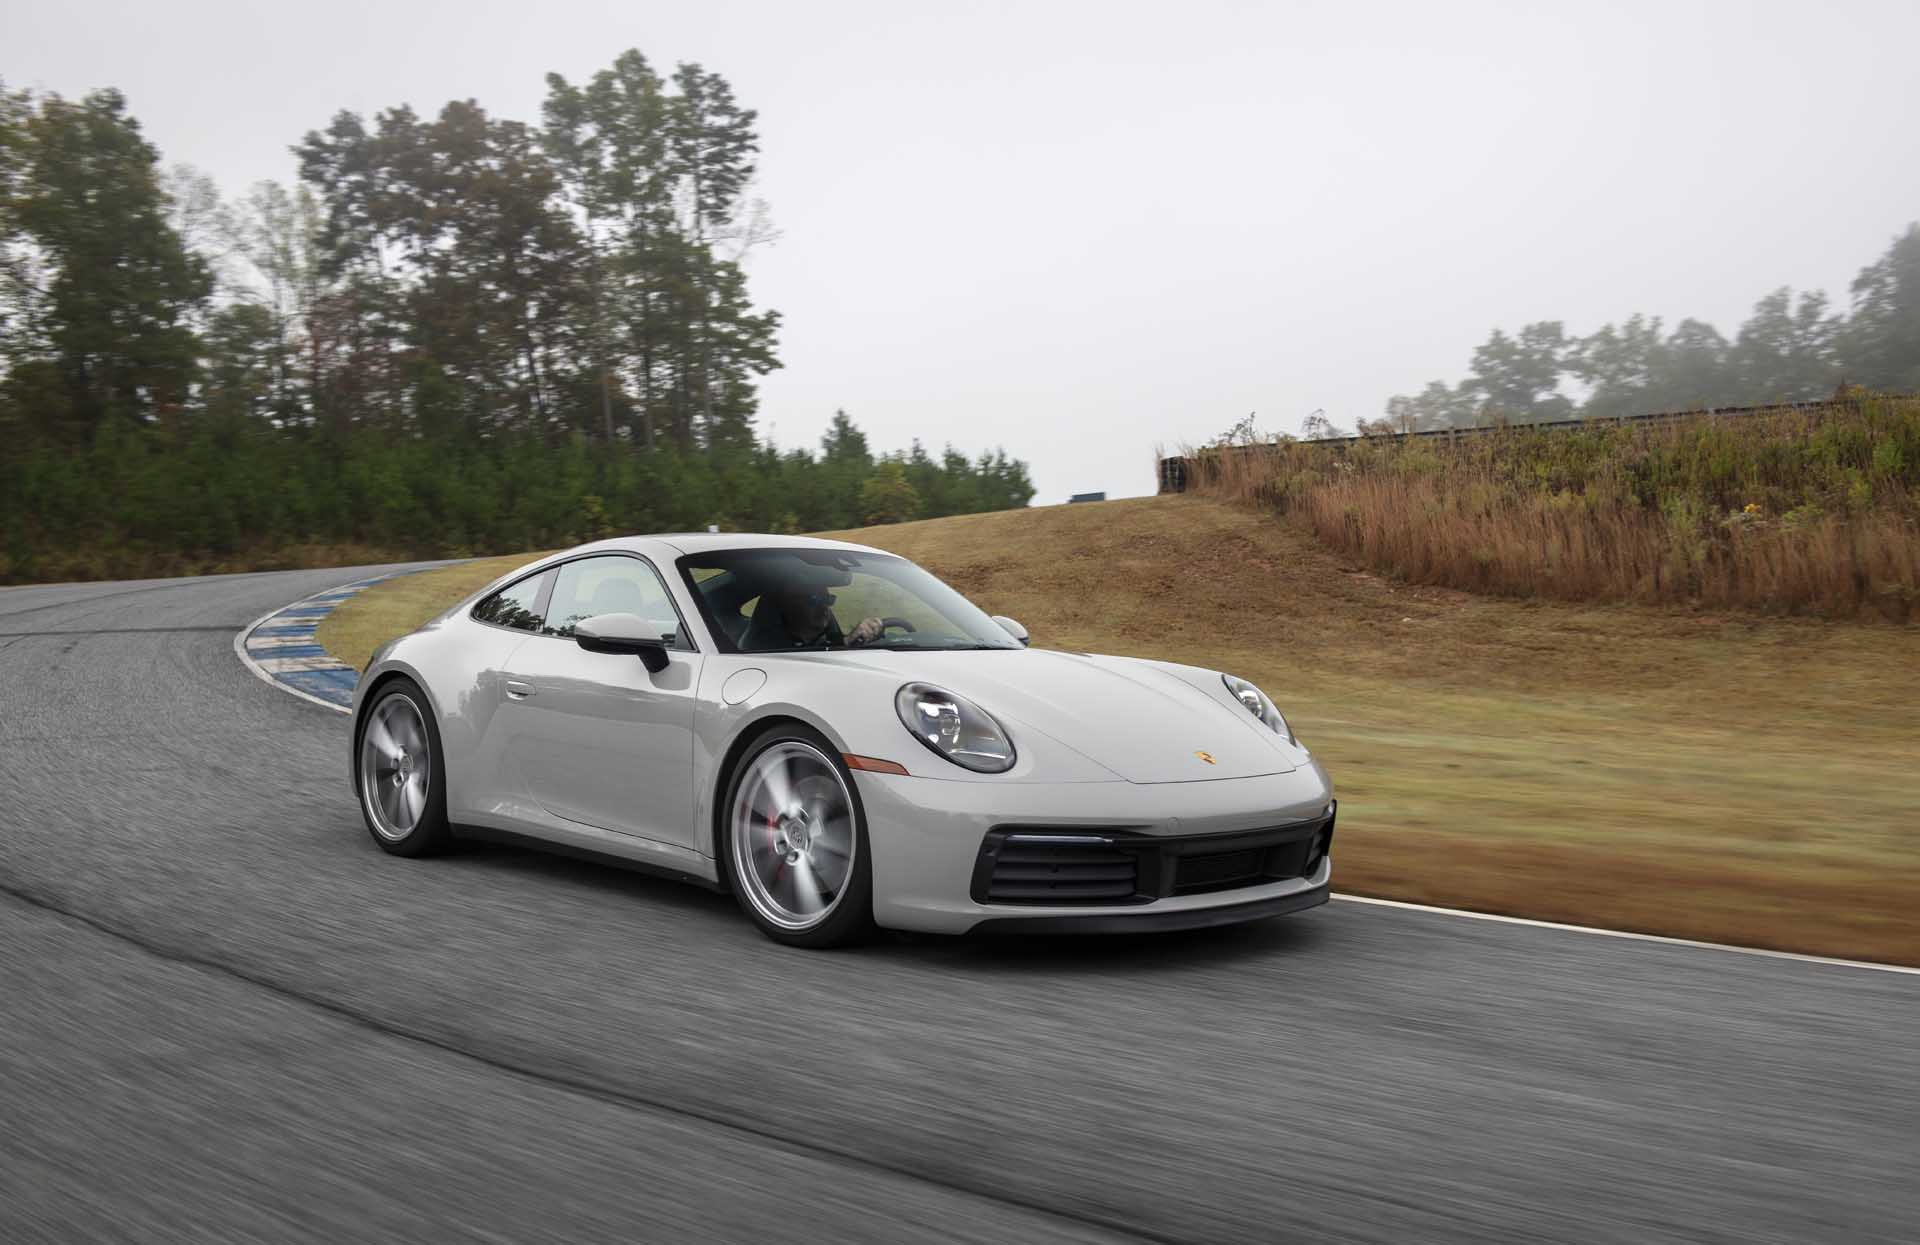 Motor Authority Best Car To Buy 2020 nominee: Porsche 911